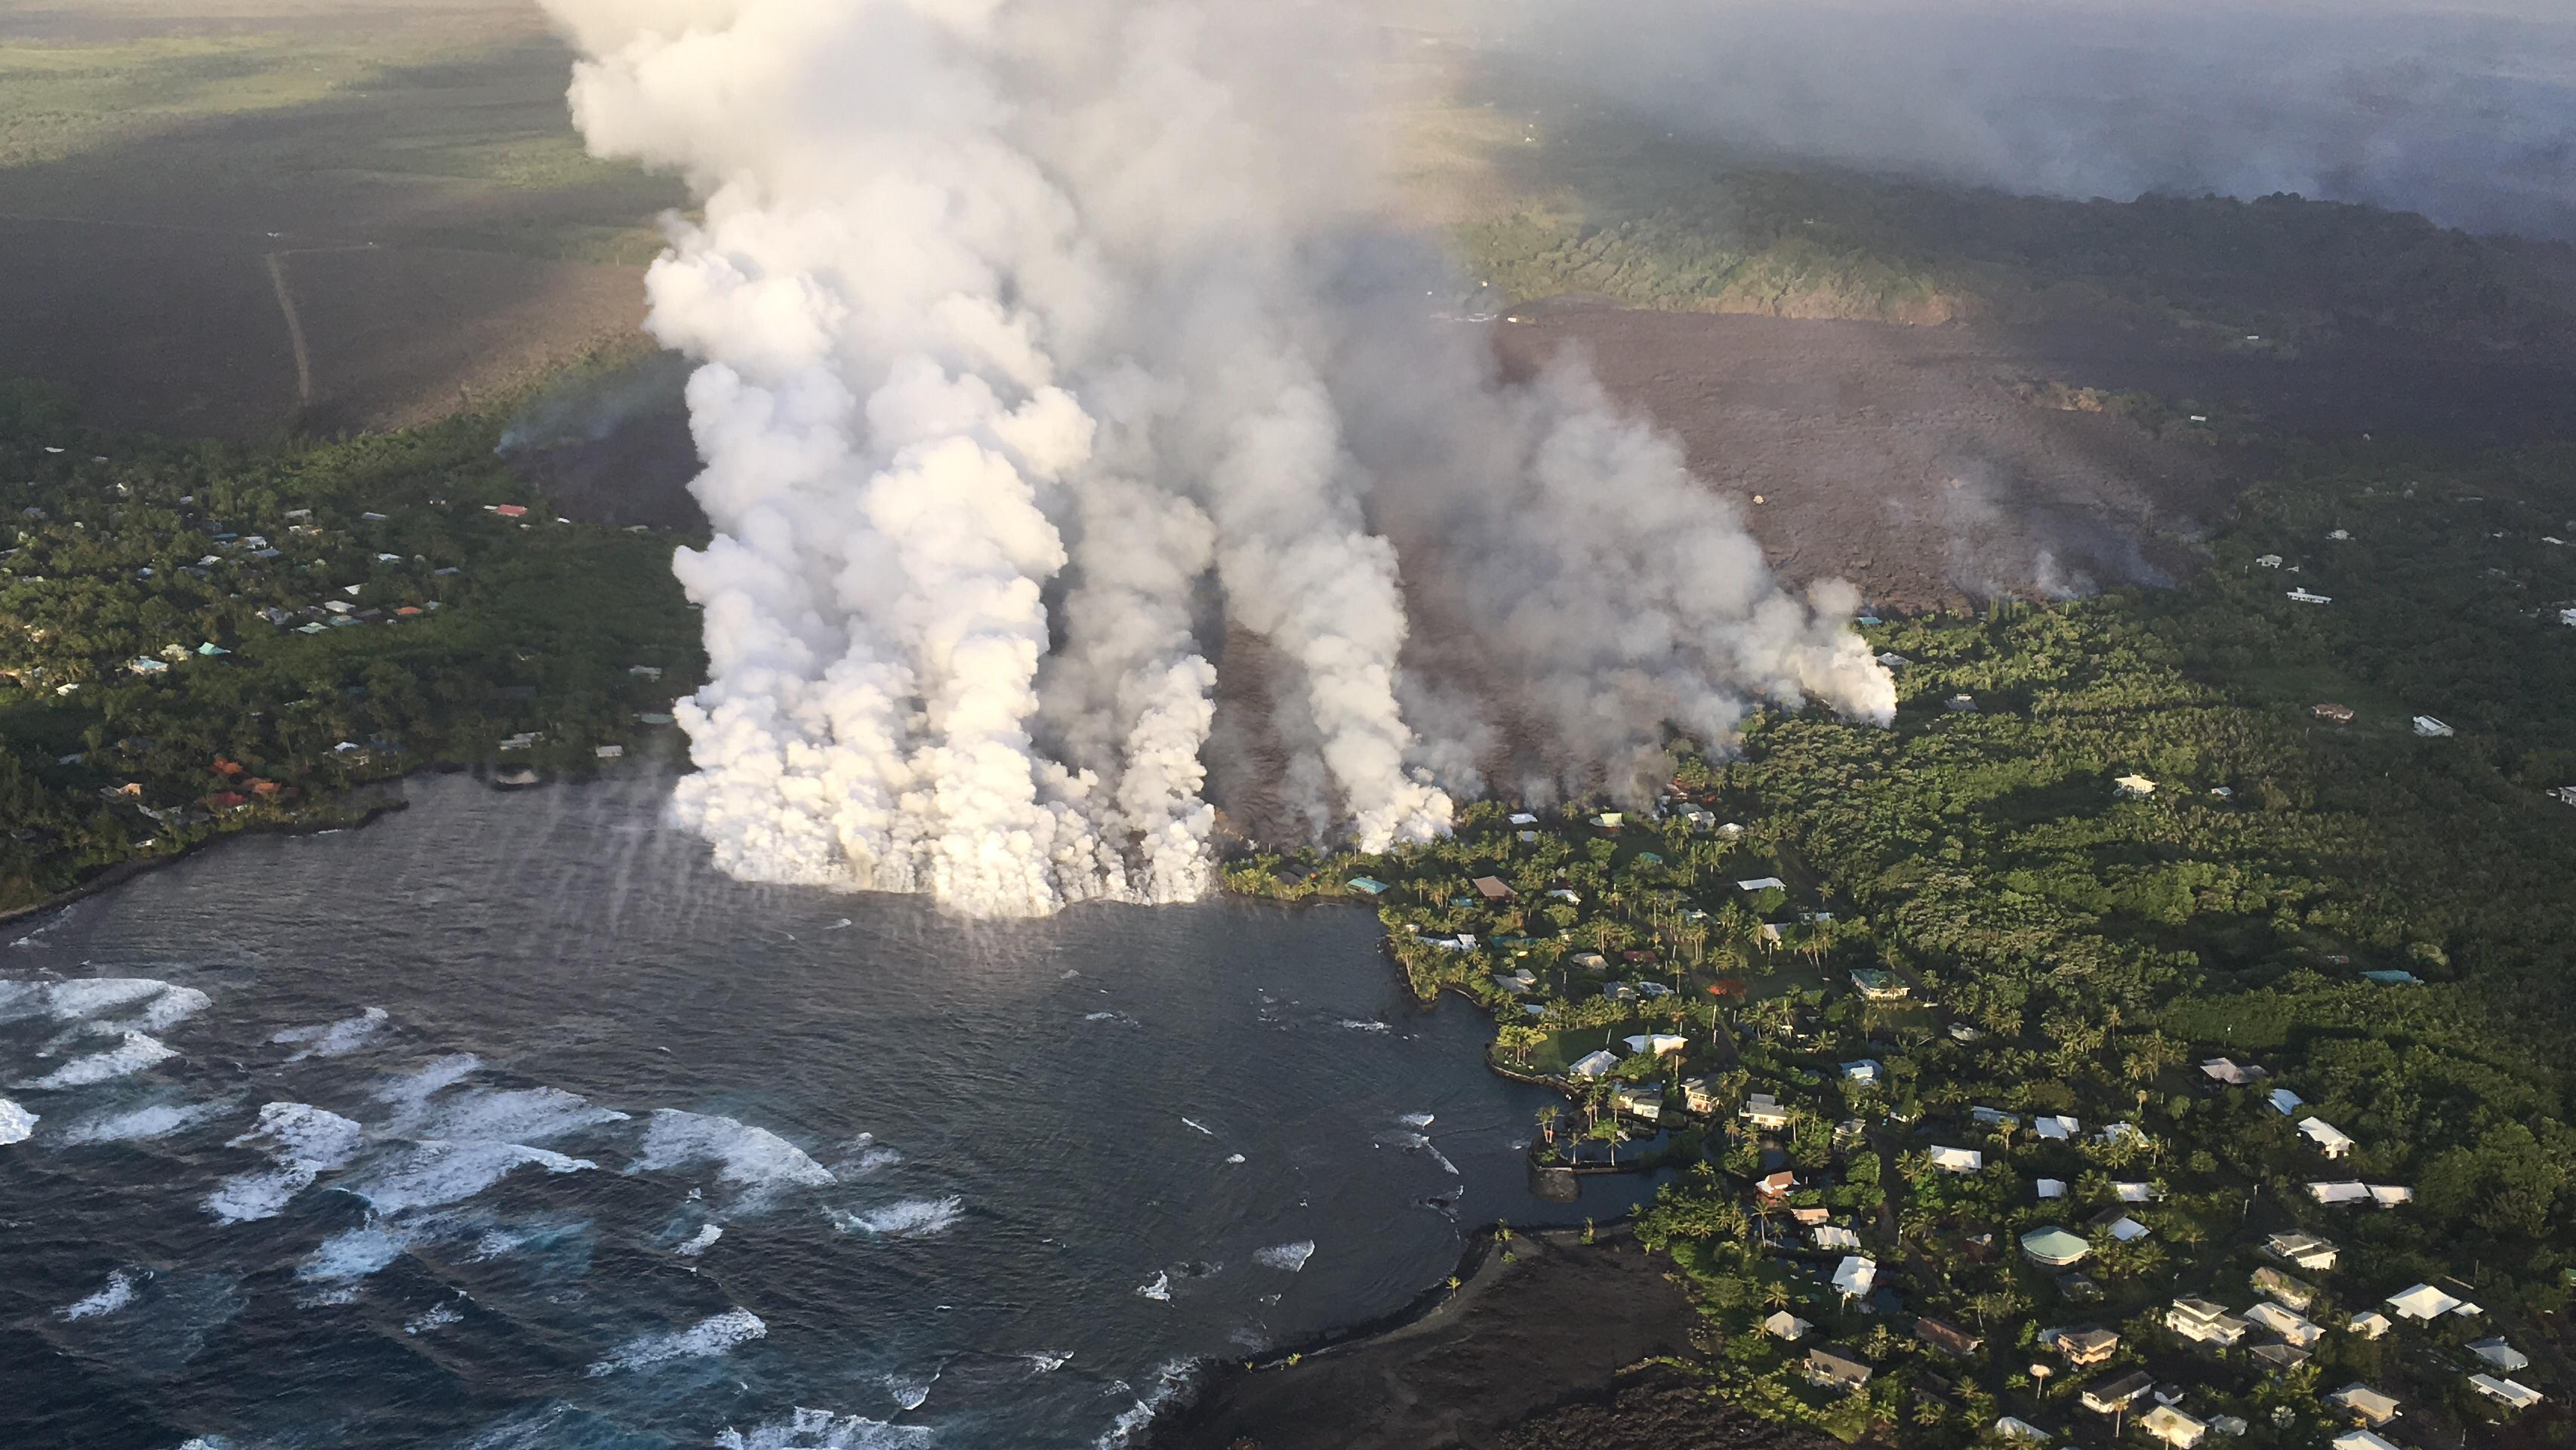 Overflight photograph at approximately 6:13 a.m. HST shows the lava flow originating from Fissure 8 (not visible in photograph) entering Kapoho Bay. The ocean entry was reported to have occurred by 10:30 p.m. on the night of June 3, 2018. (USGS)